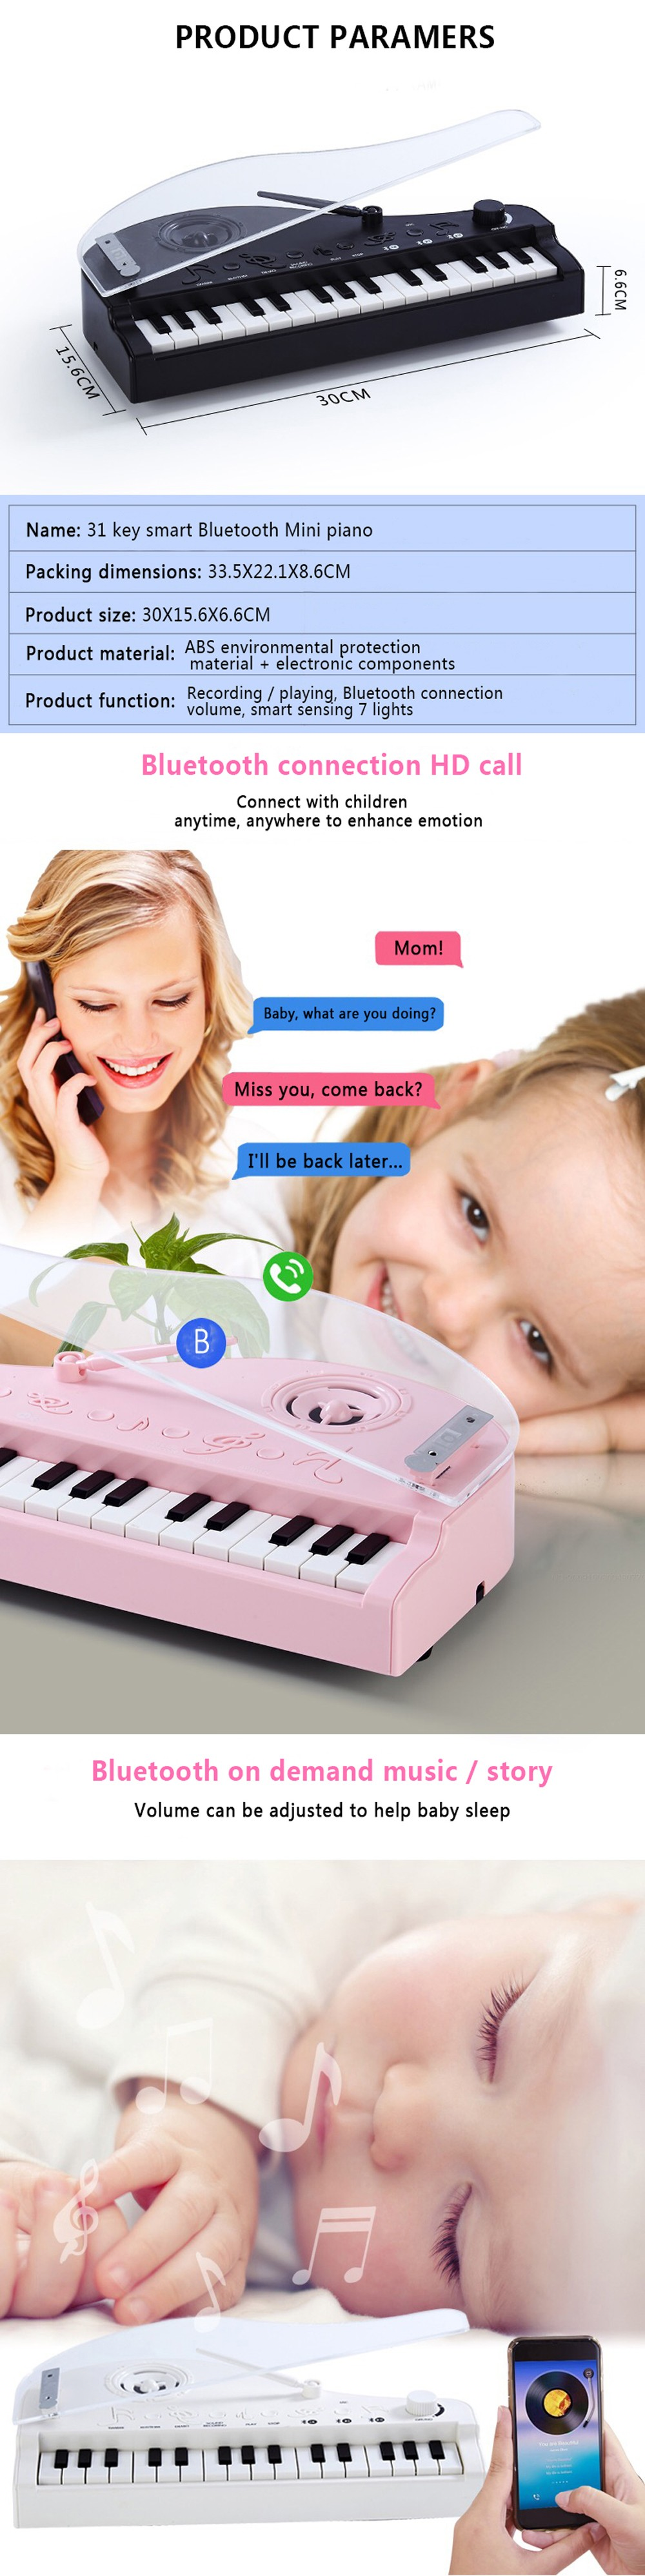 667 Intelligent Induction 31 Key High-quality Sound Bluetooth Colorful Piano- White